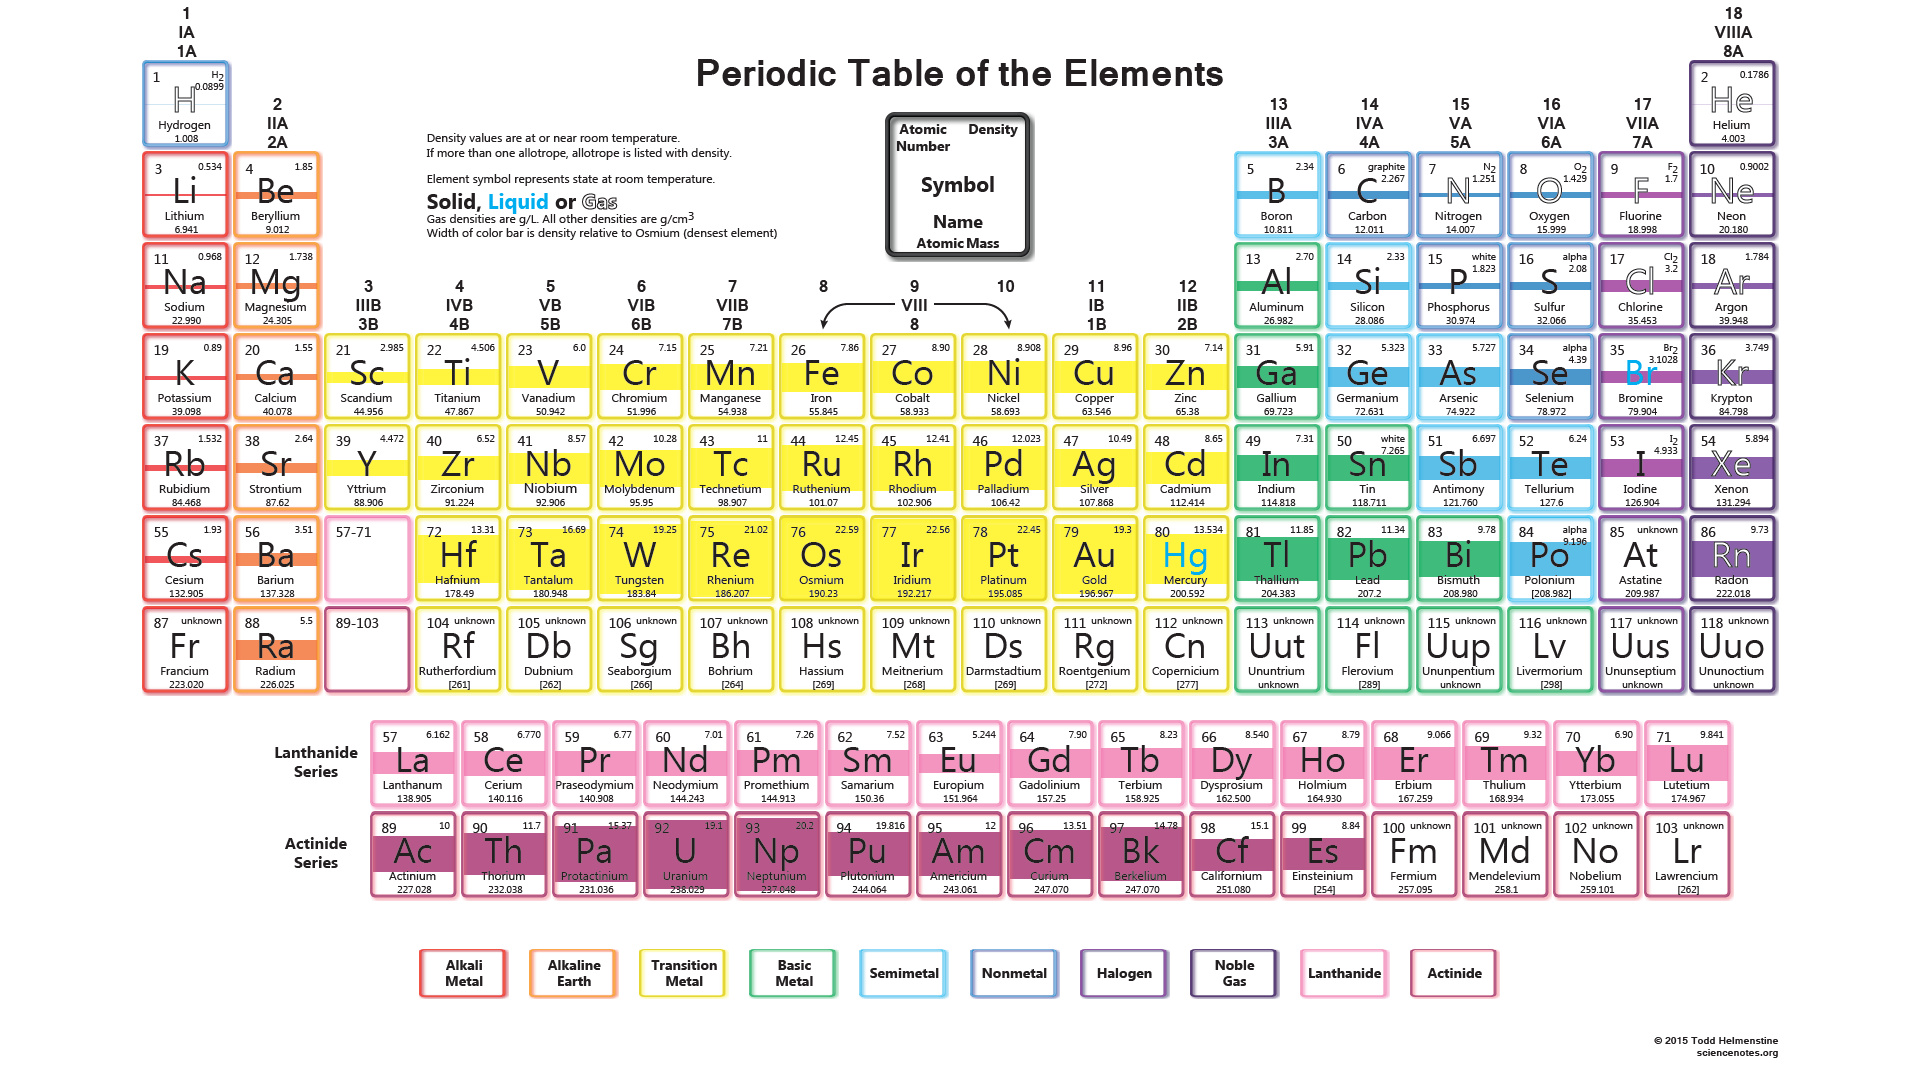 30 printable periodic tables for chemistry science notes and density periodic table gamestrikefo Gallery